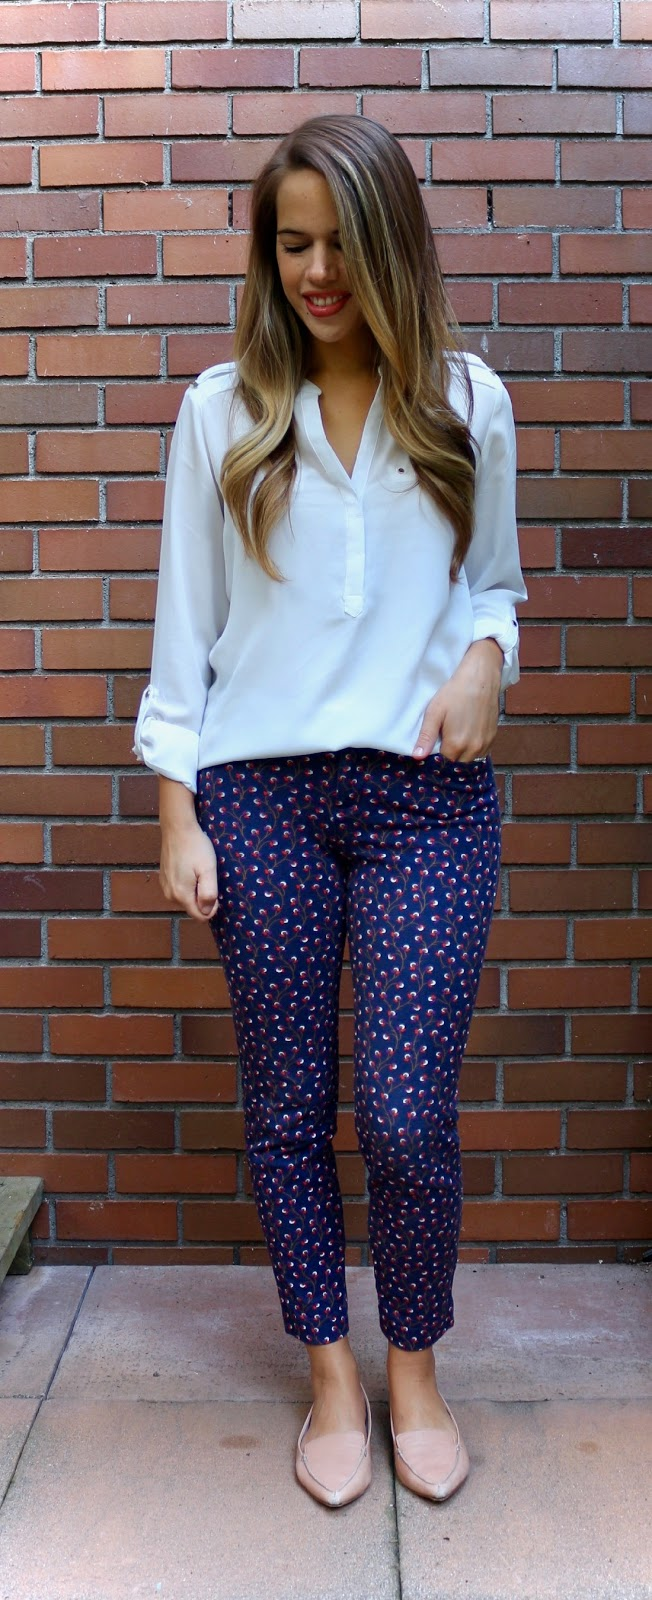 Jules in Flats - Patterned Pants with White Blouse (Business Casual Fall Workwear on a Budget)